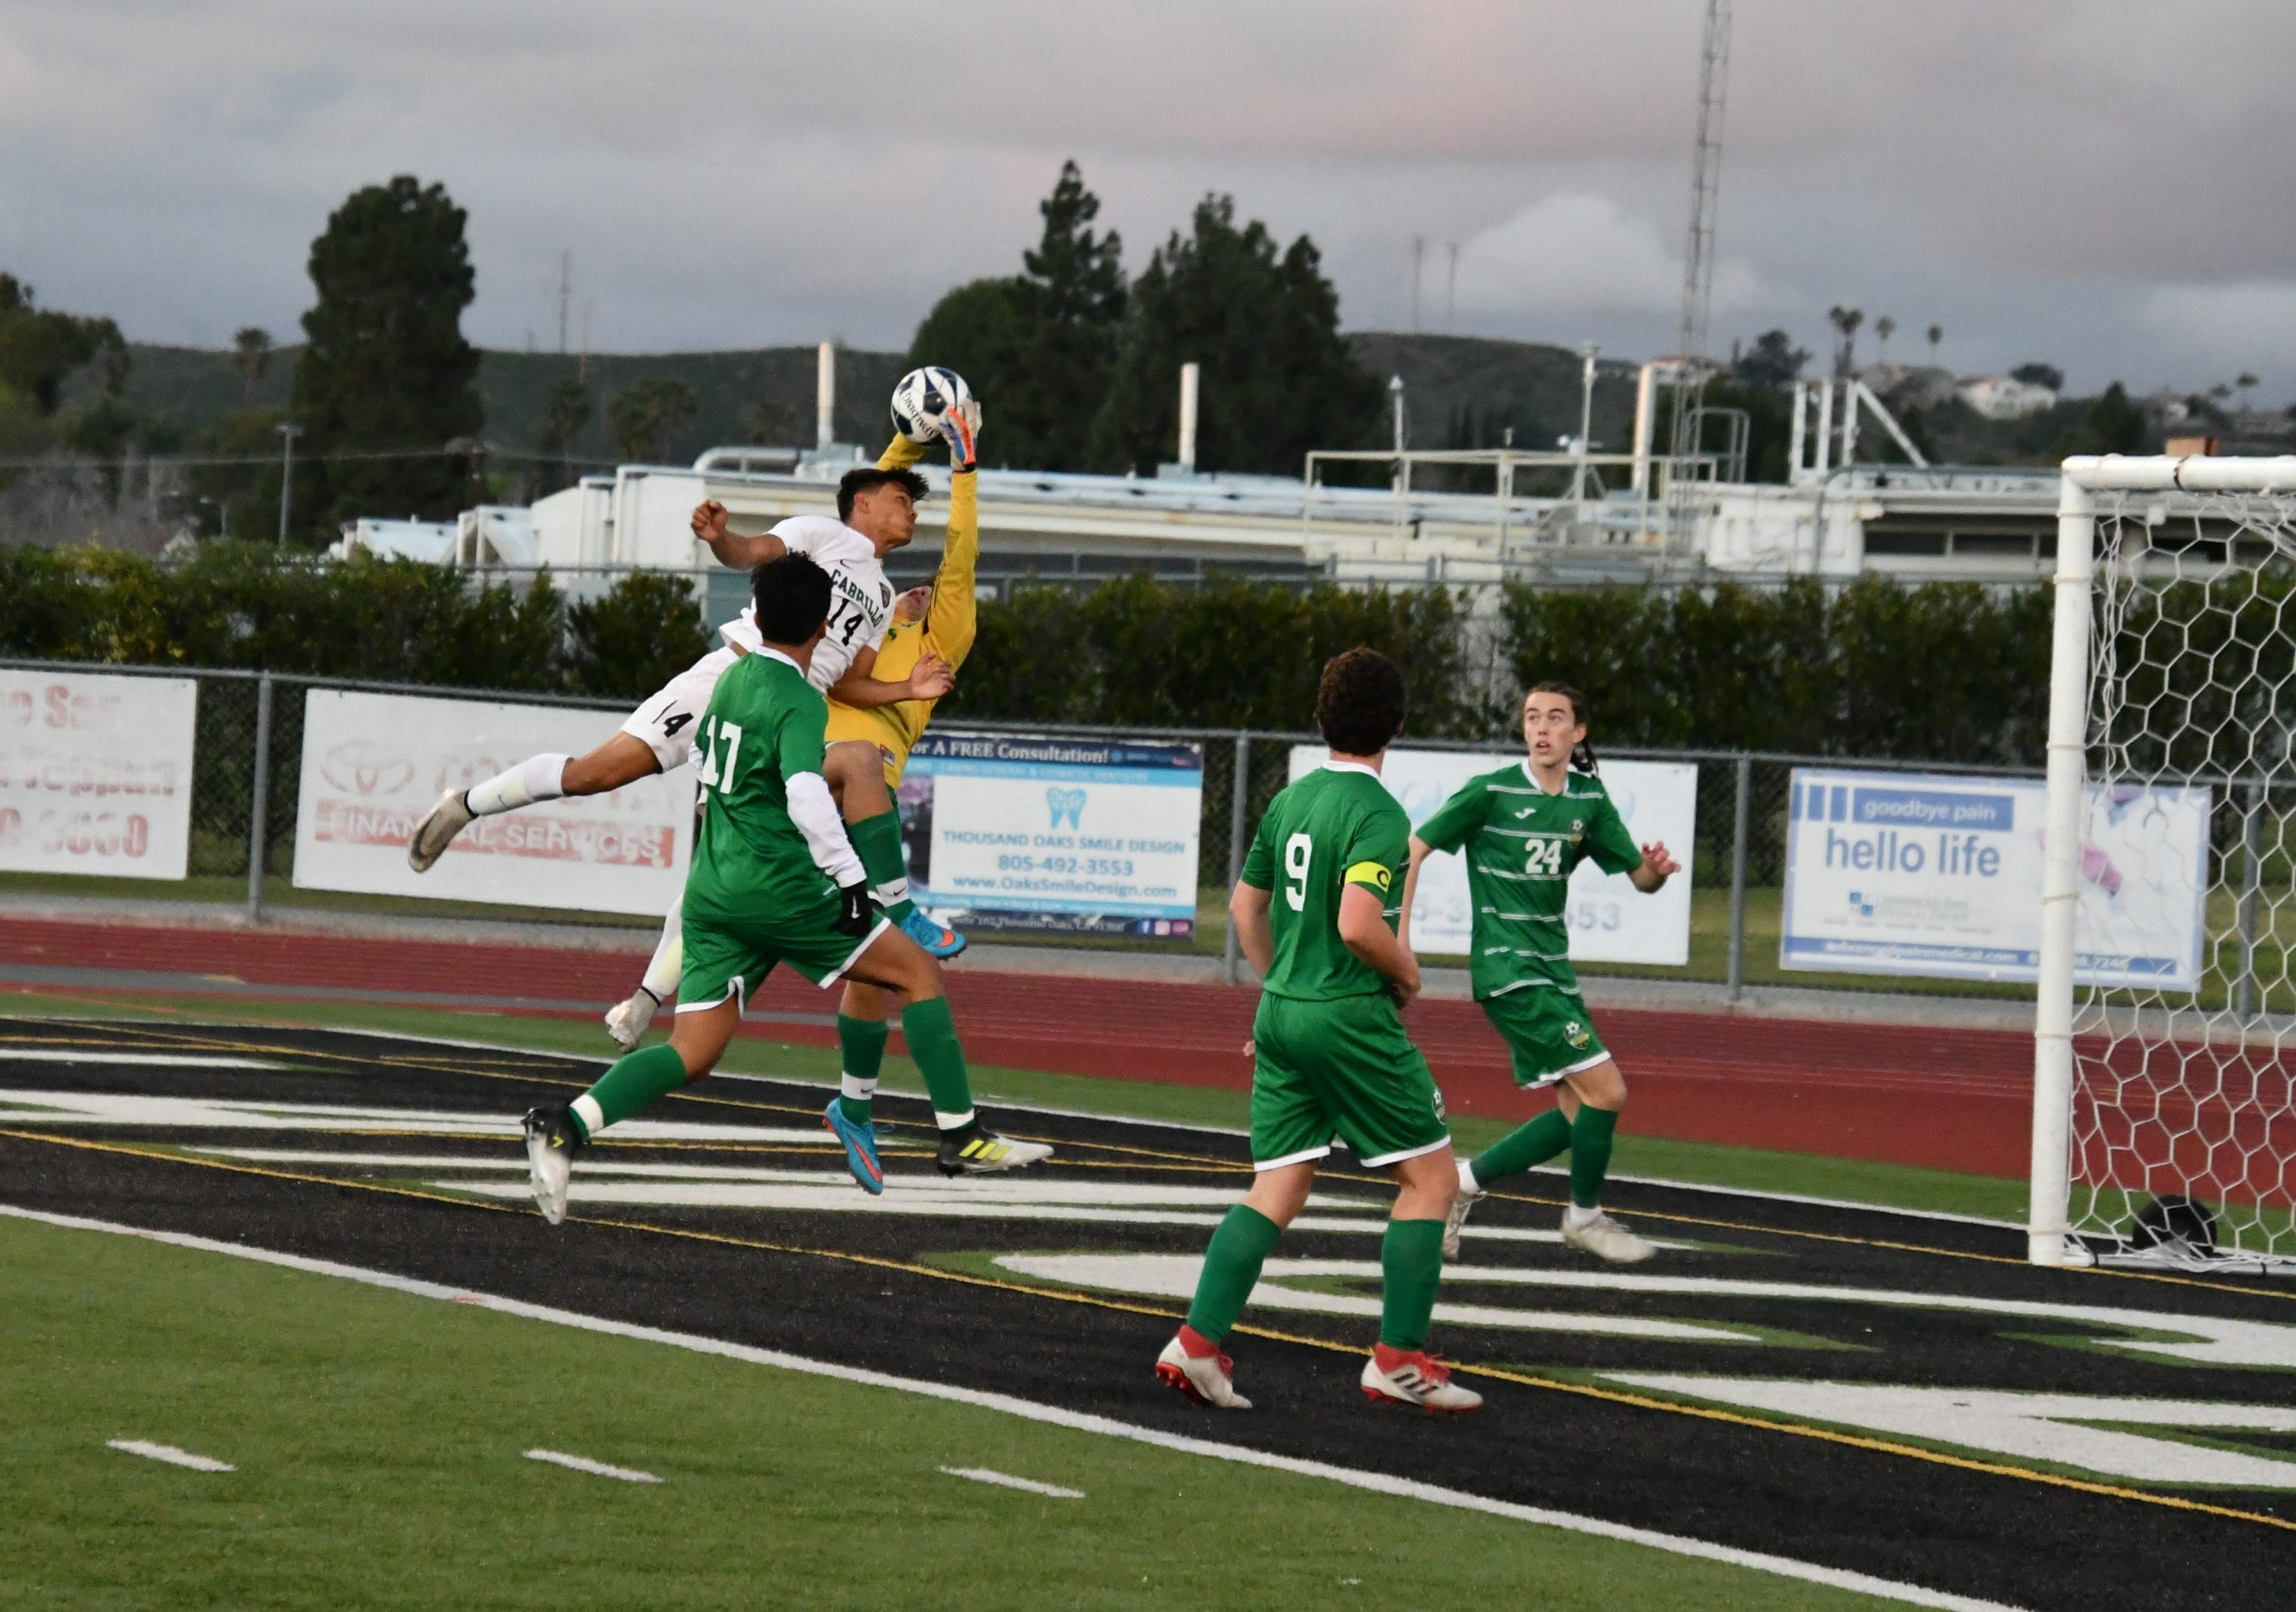 Thousand Oaks High goalkeeper Ramon Yerena rises to make a save under pressure on Saturday night in the second round of the CIF-Southern Section Division 2 playoffs in Thousand Oaks. Long Beach-Cabrillo won, 2-0.